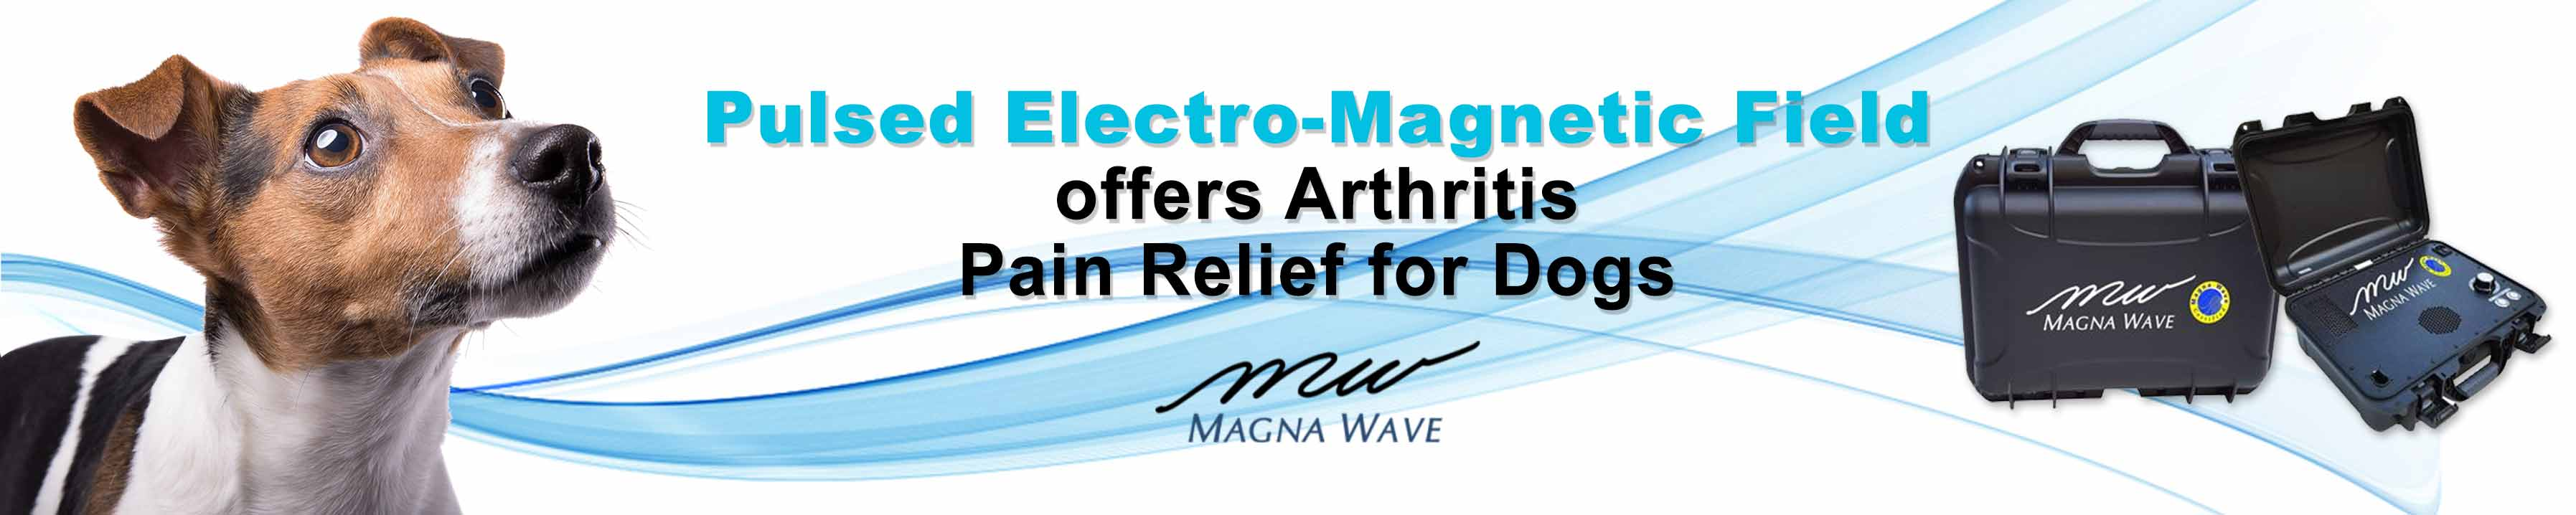 Pulsed Electro-Magnetic Field offers arthritis pain relief for dogs